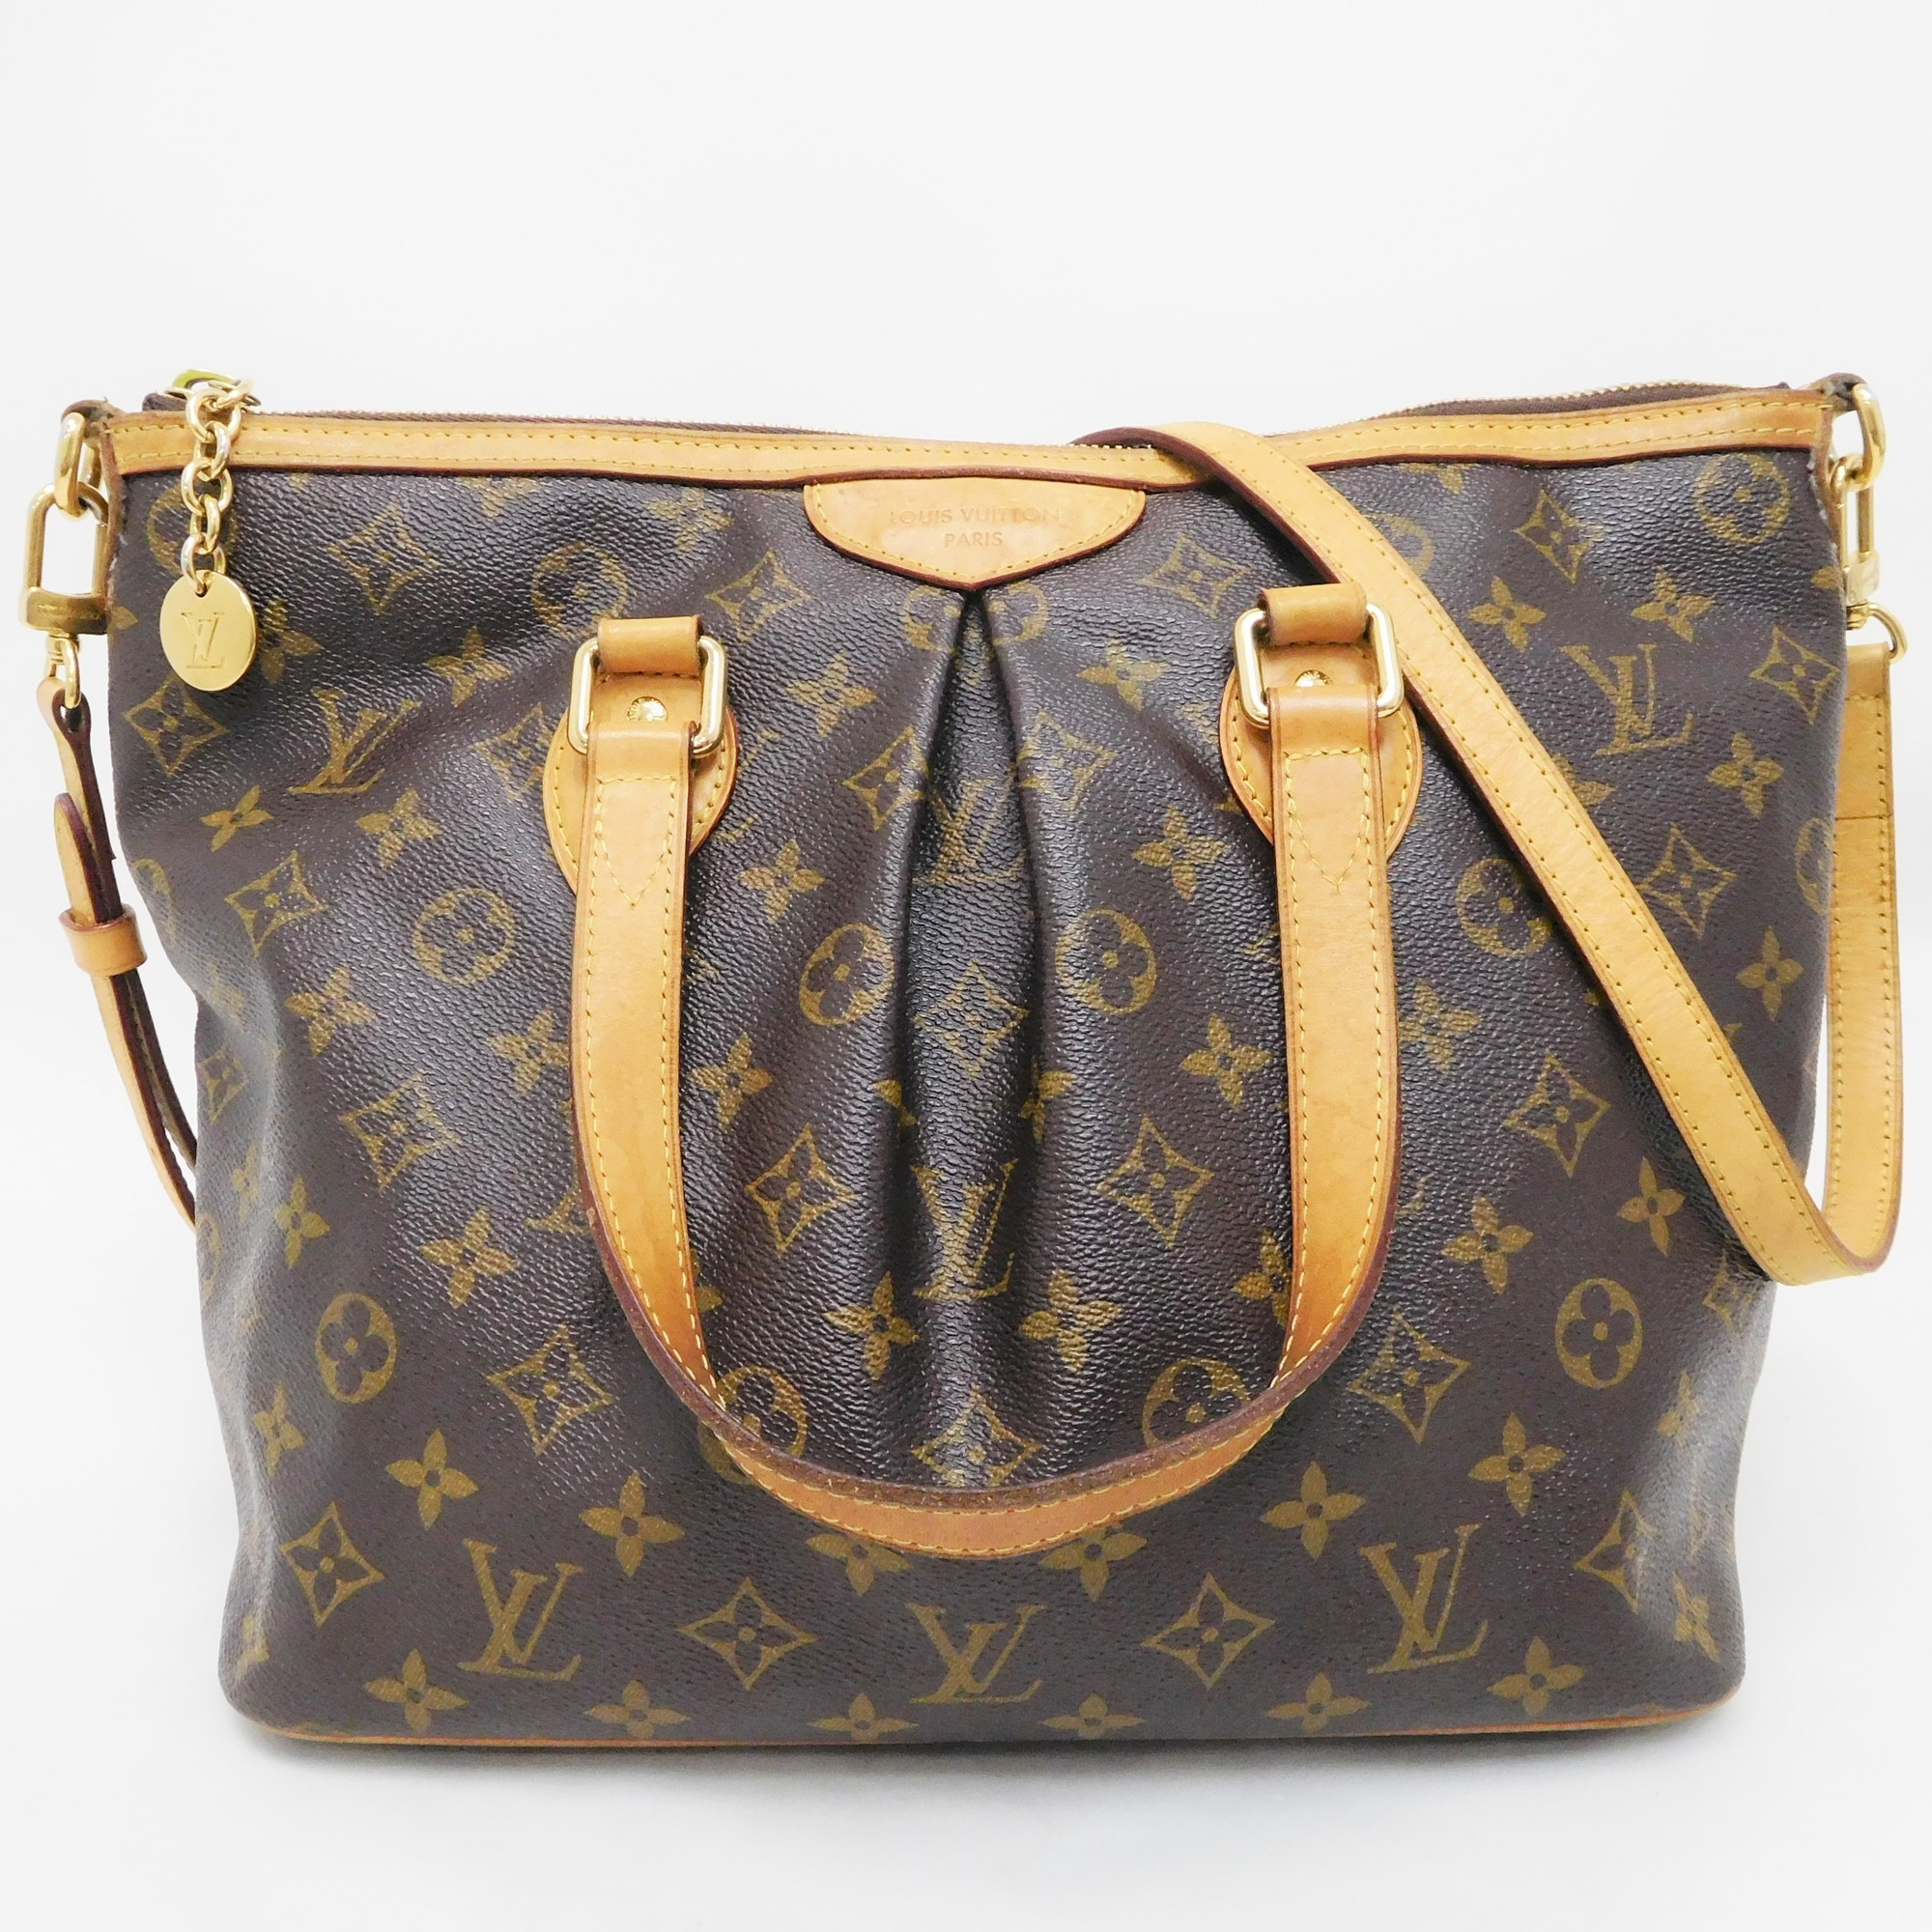 89b1fe363467 Auth Louis Vuitton Monogram Palermo PM M40145 Women s Shoulder Bag ...